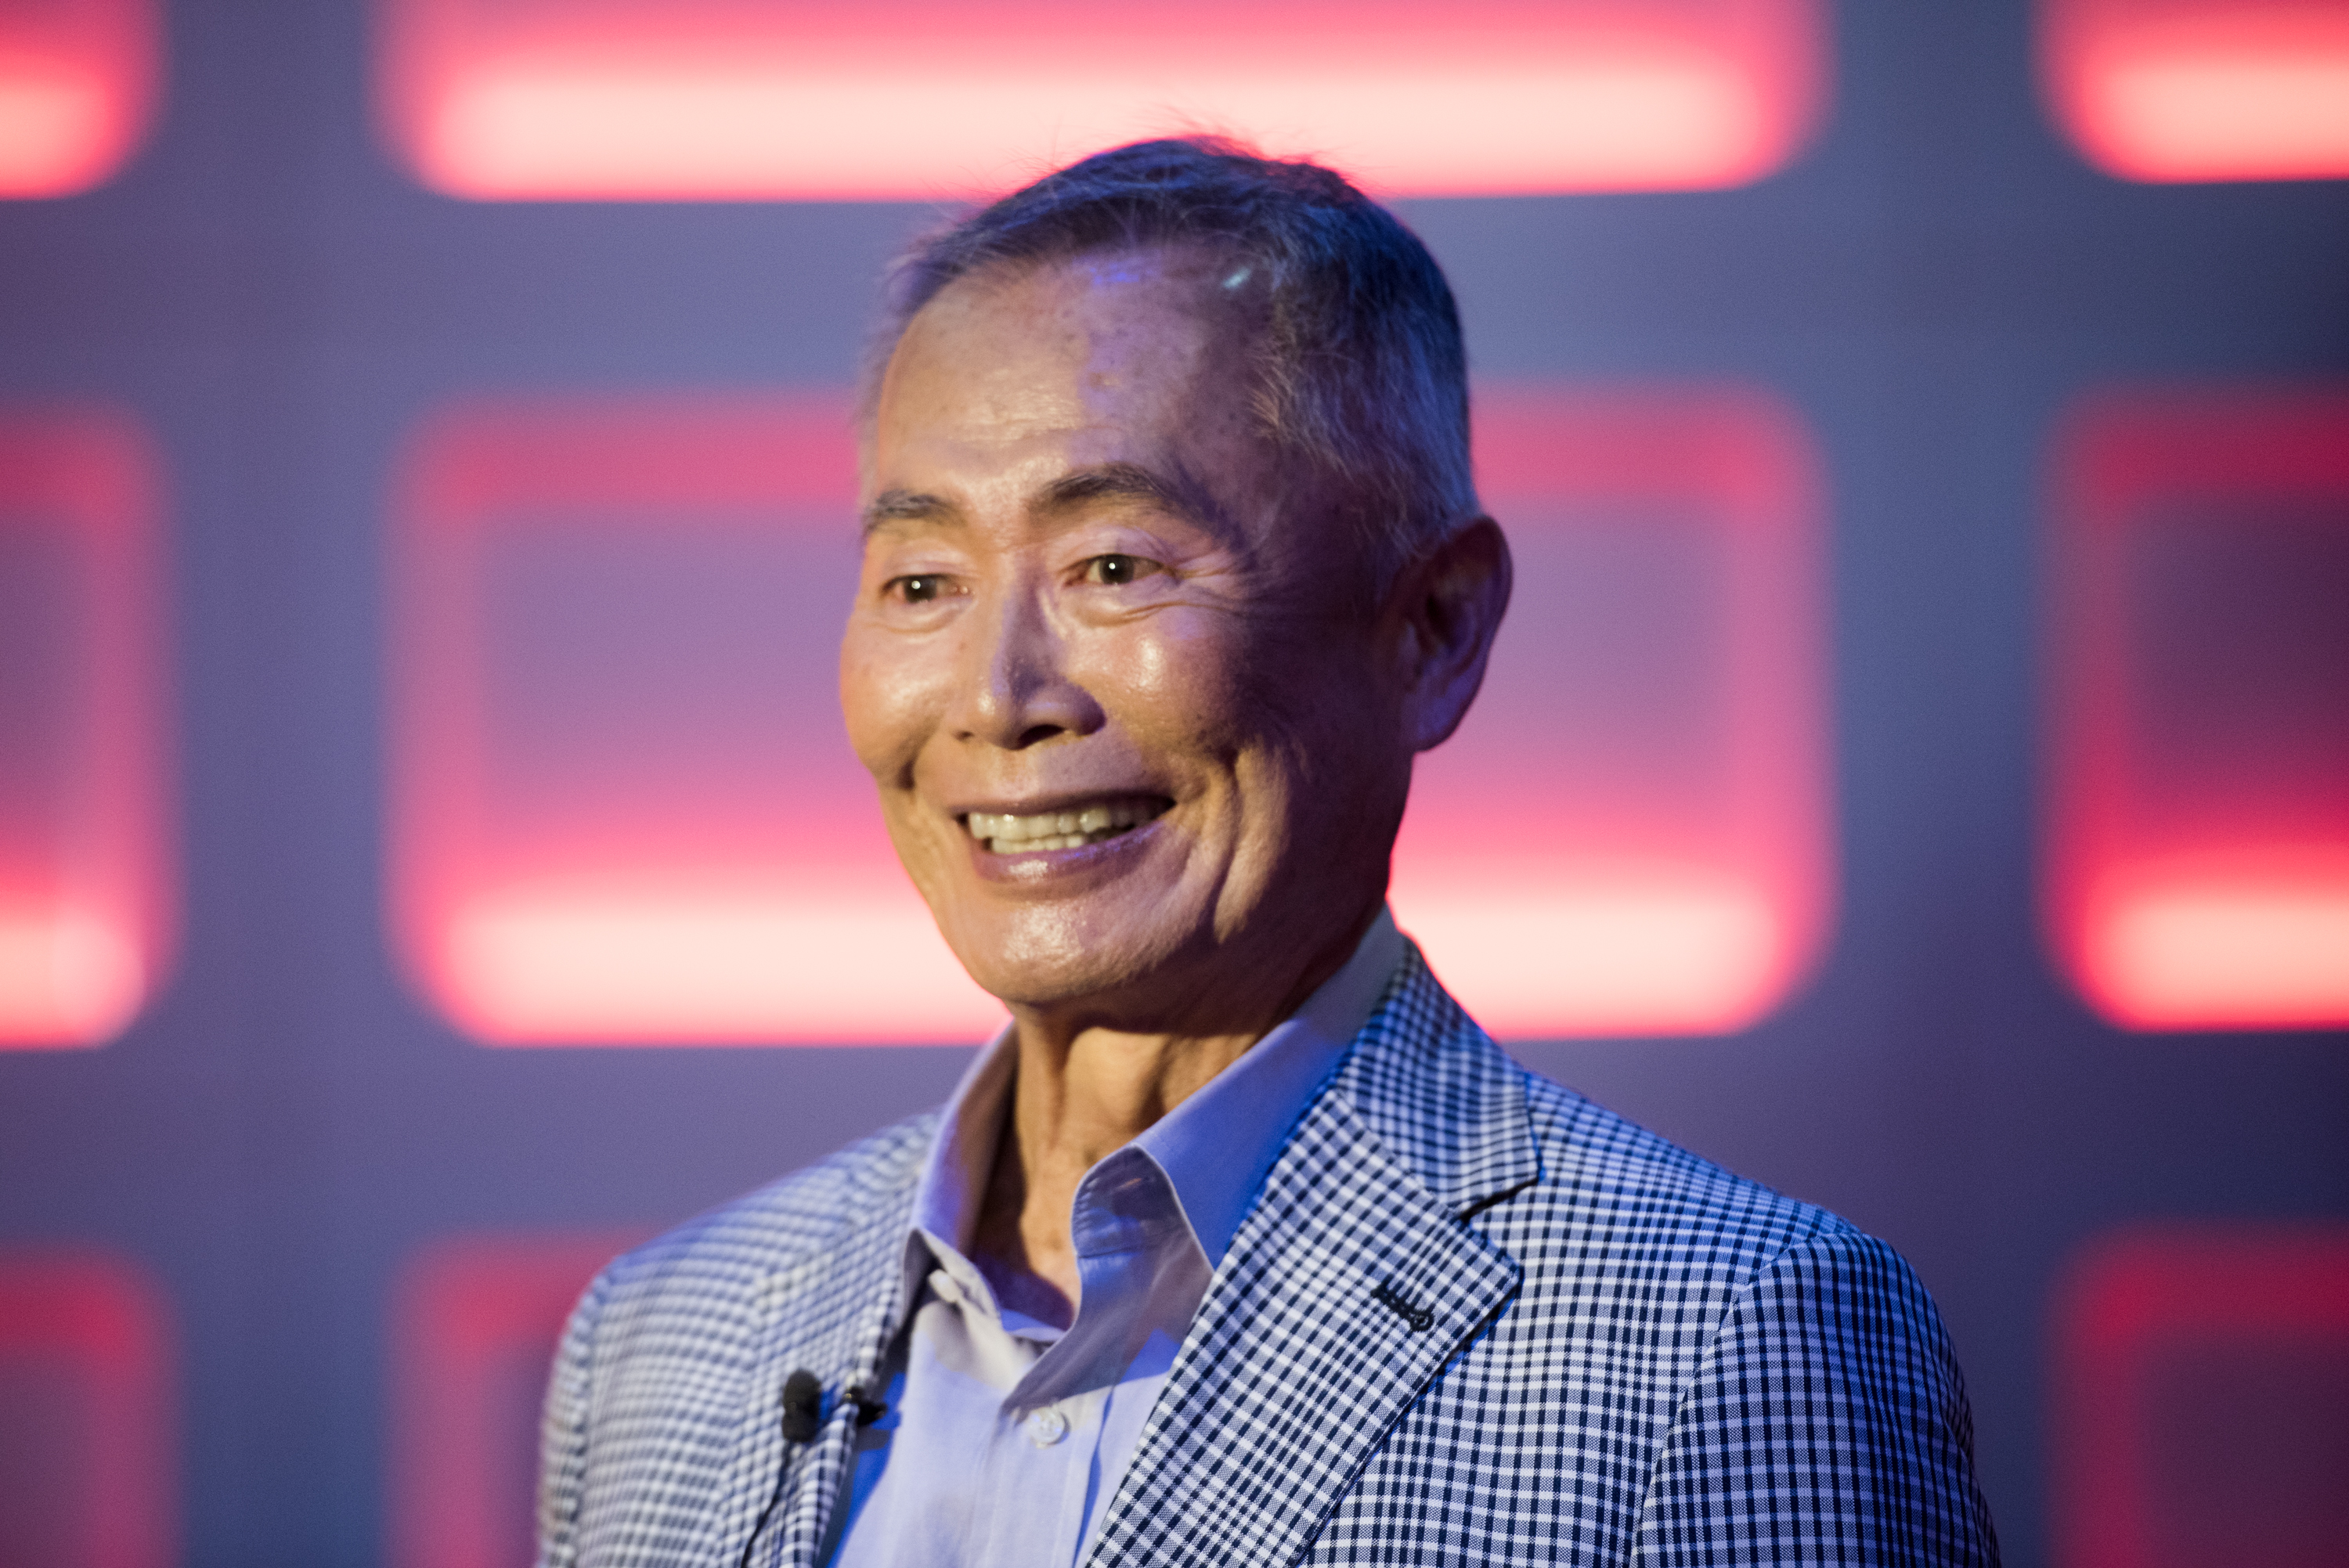 Actor George Takei attends the Star Trek: The Star Fleet Academy Experience at Intrepid Sea-Air-Space Museum on June 30, 2016 in New York.